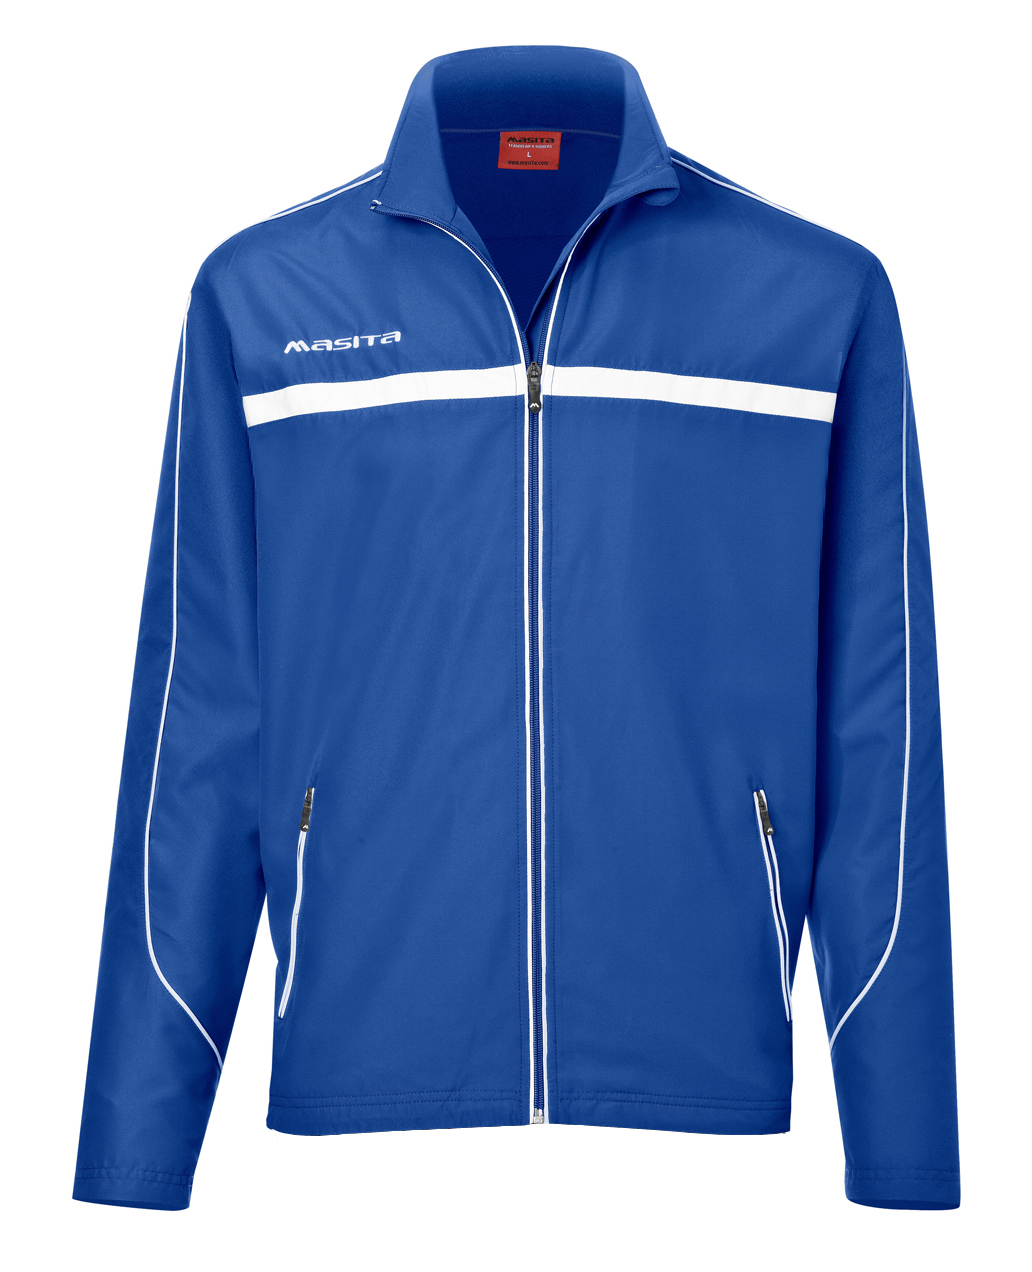 Presentation Jacket Brasil  Royal Blue / White